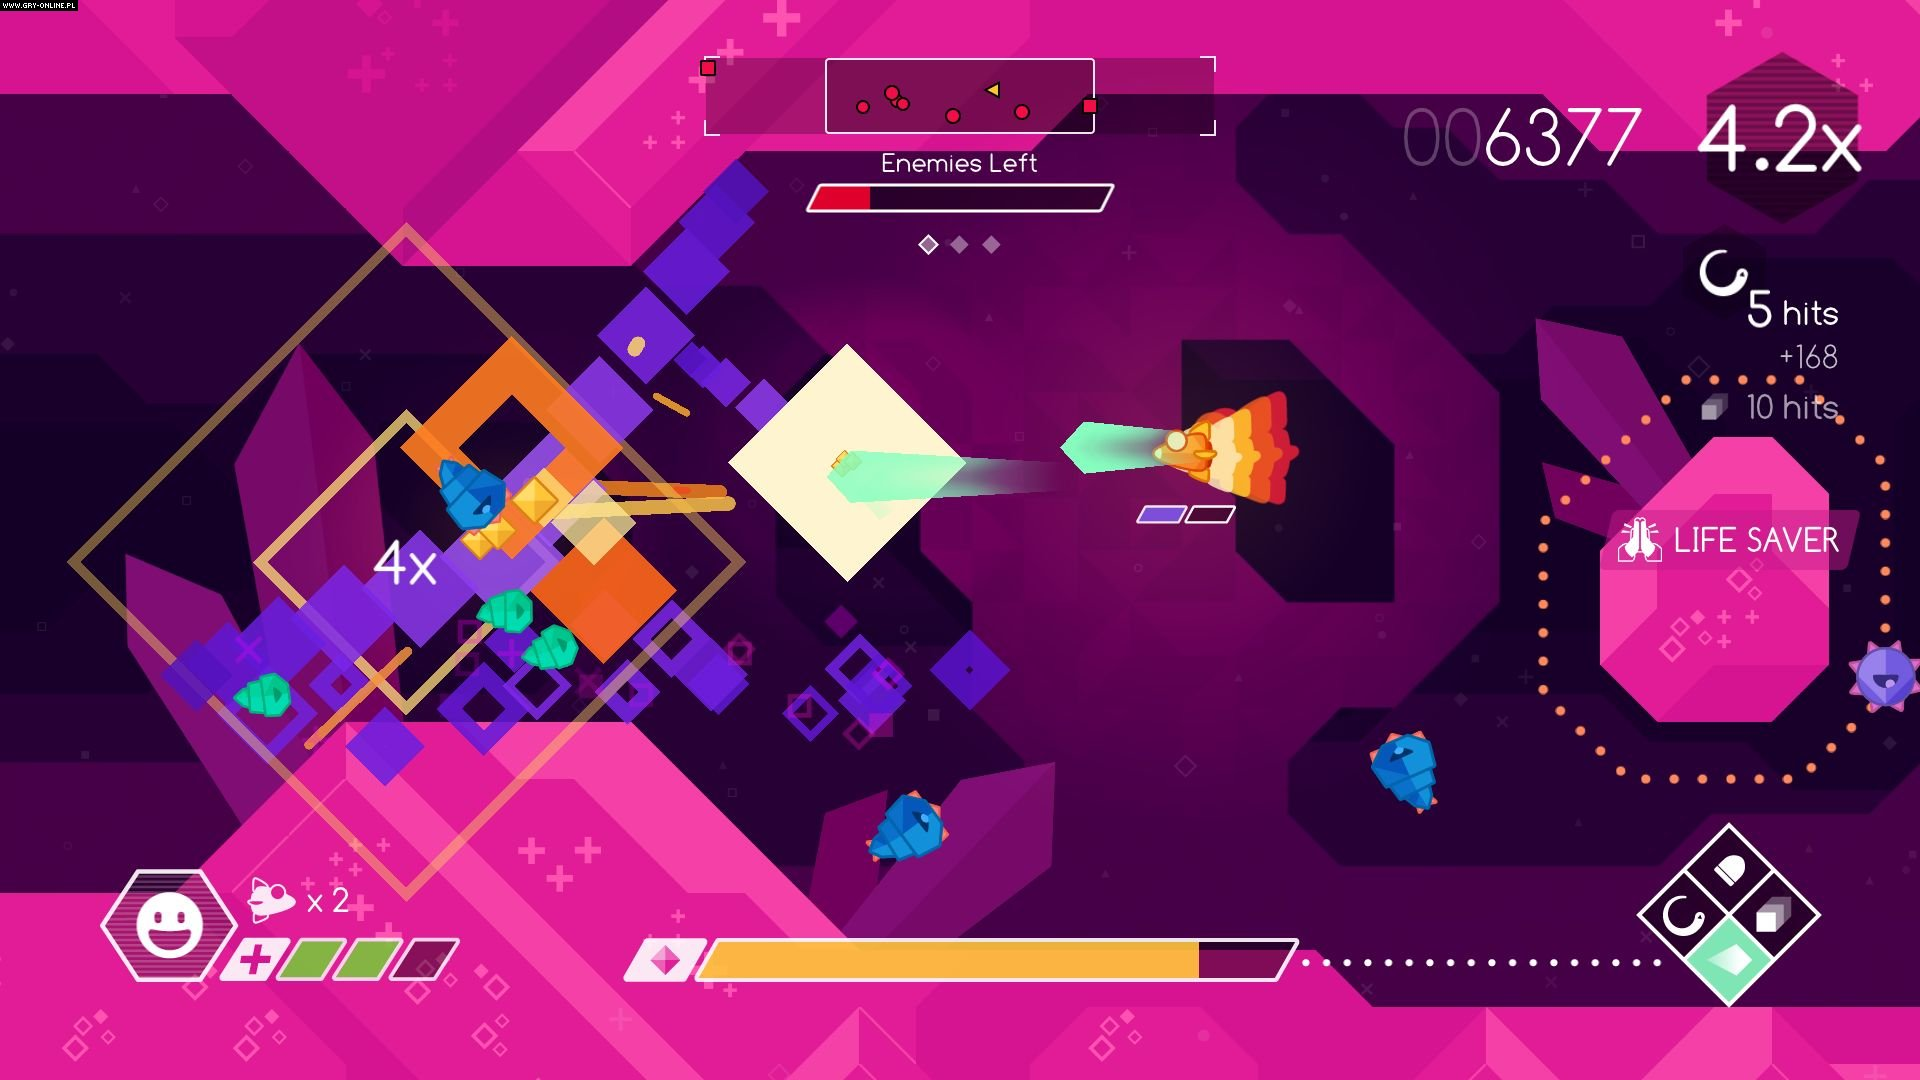 Graceful Explosion Machine PC, PS4, Switch Games Image 6/6, Vertex Pop